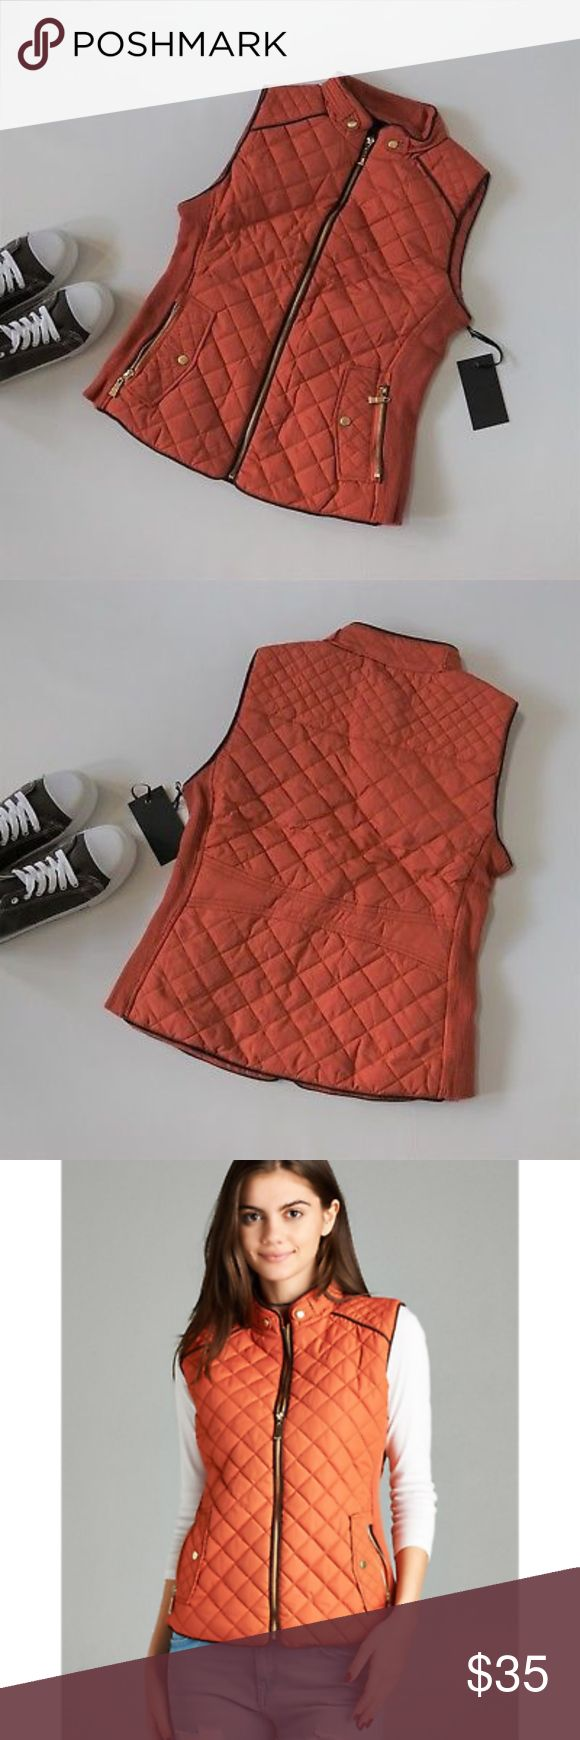 Quilted Padded Vest New S M L Zip Pockets RUST Quilted Padded Vest New S M L Zip Pockets Lightweight Rust Burnt Orange  Features:  poly; poly lining vegan suede piping front zip pockets side ribbing that stretches for a perfect fit hand wash  Measurements, laying flat (in inches):  Bust:       18 S, 19 M, 20 L Waist:      16, 17, 18 Length:    22, 23, 23 Jackets & Coats Vests